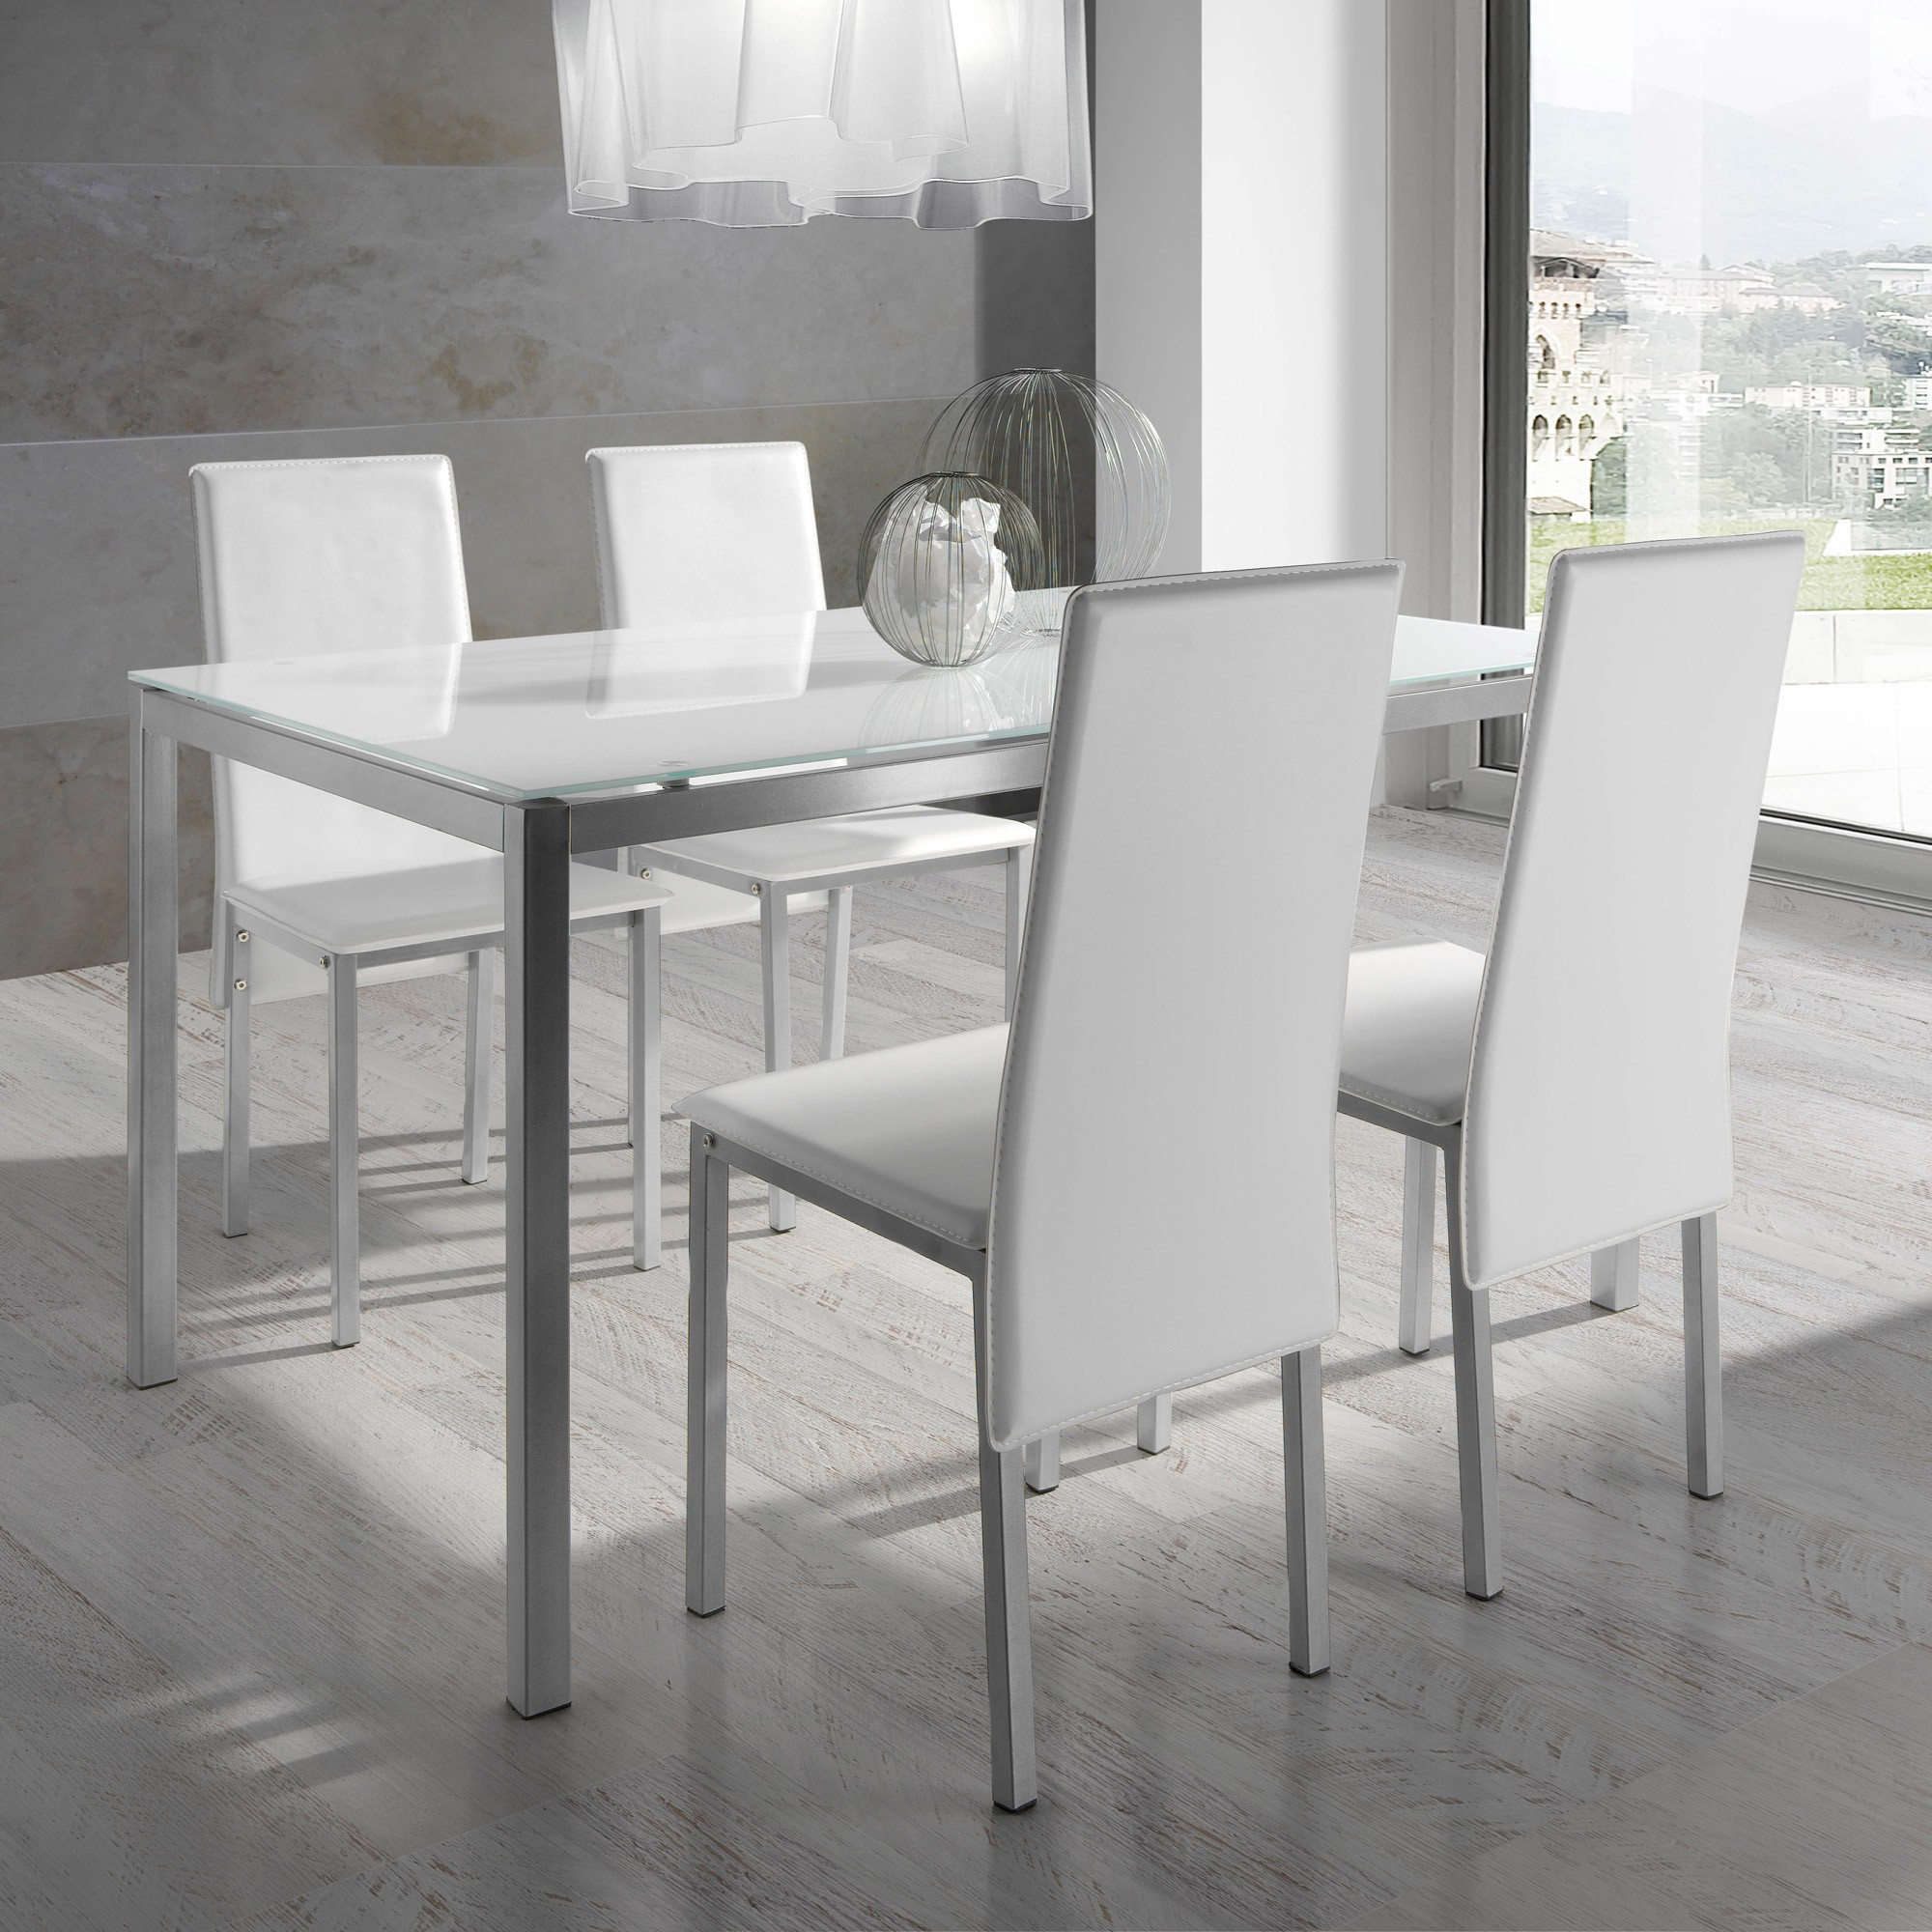 Ensemble table et chaise salle a manger but chaise for Chaise pour salle a manger design